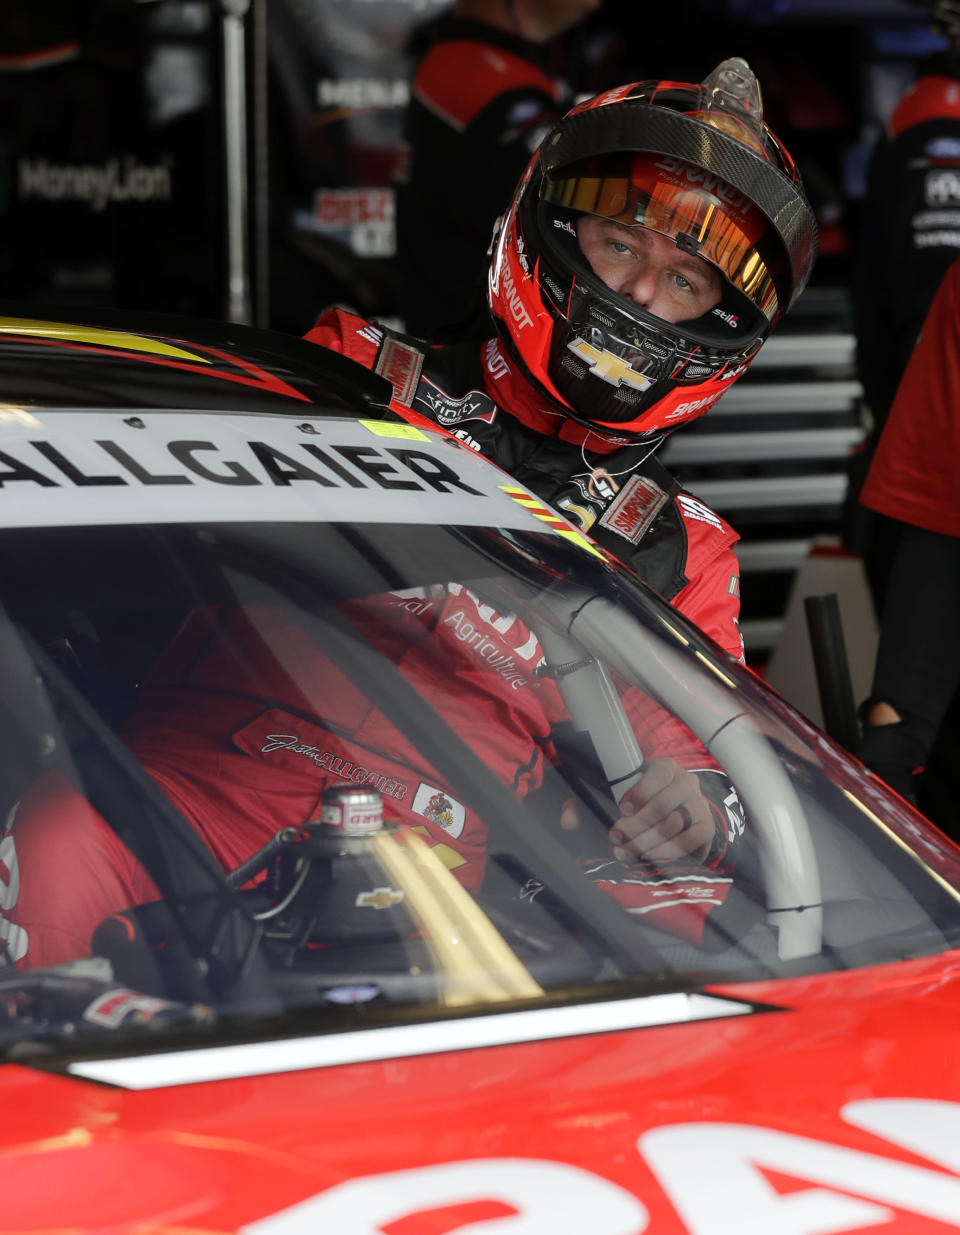 Justin Allgaier climbs into his car during a NASCAR Xfinity Series auto race practice at Chicagoland Speedway in Joliet, Ill., Friday, June 28, 2019. (AP Photo/Nam Y. Huh)